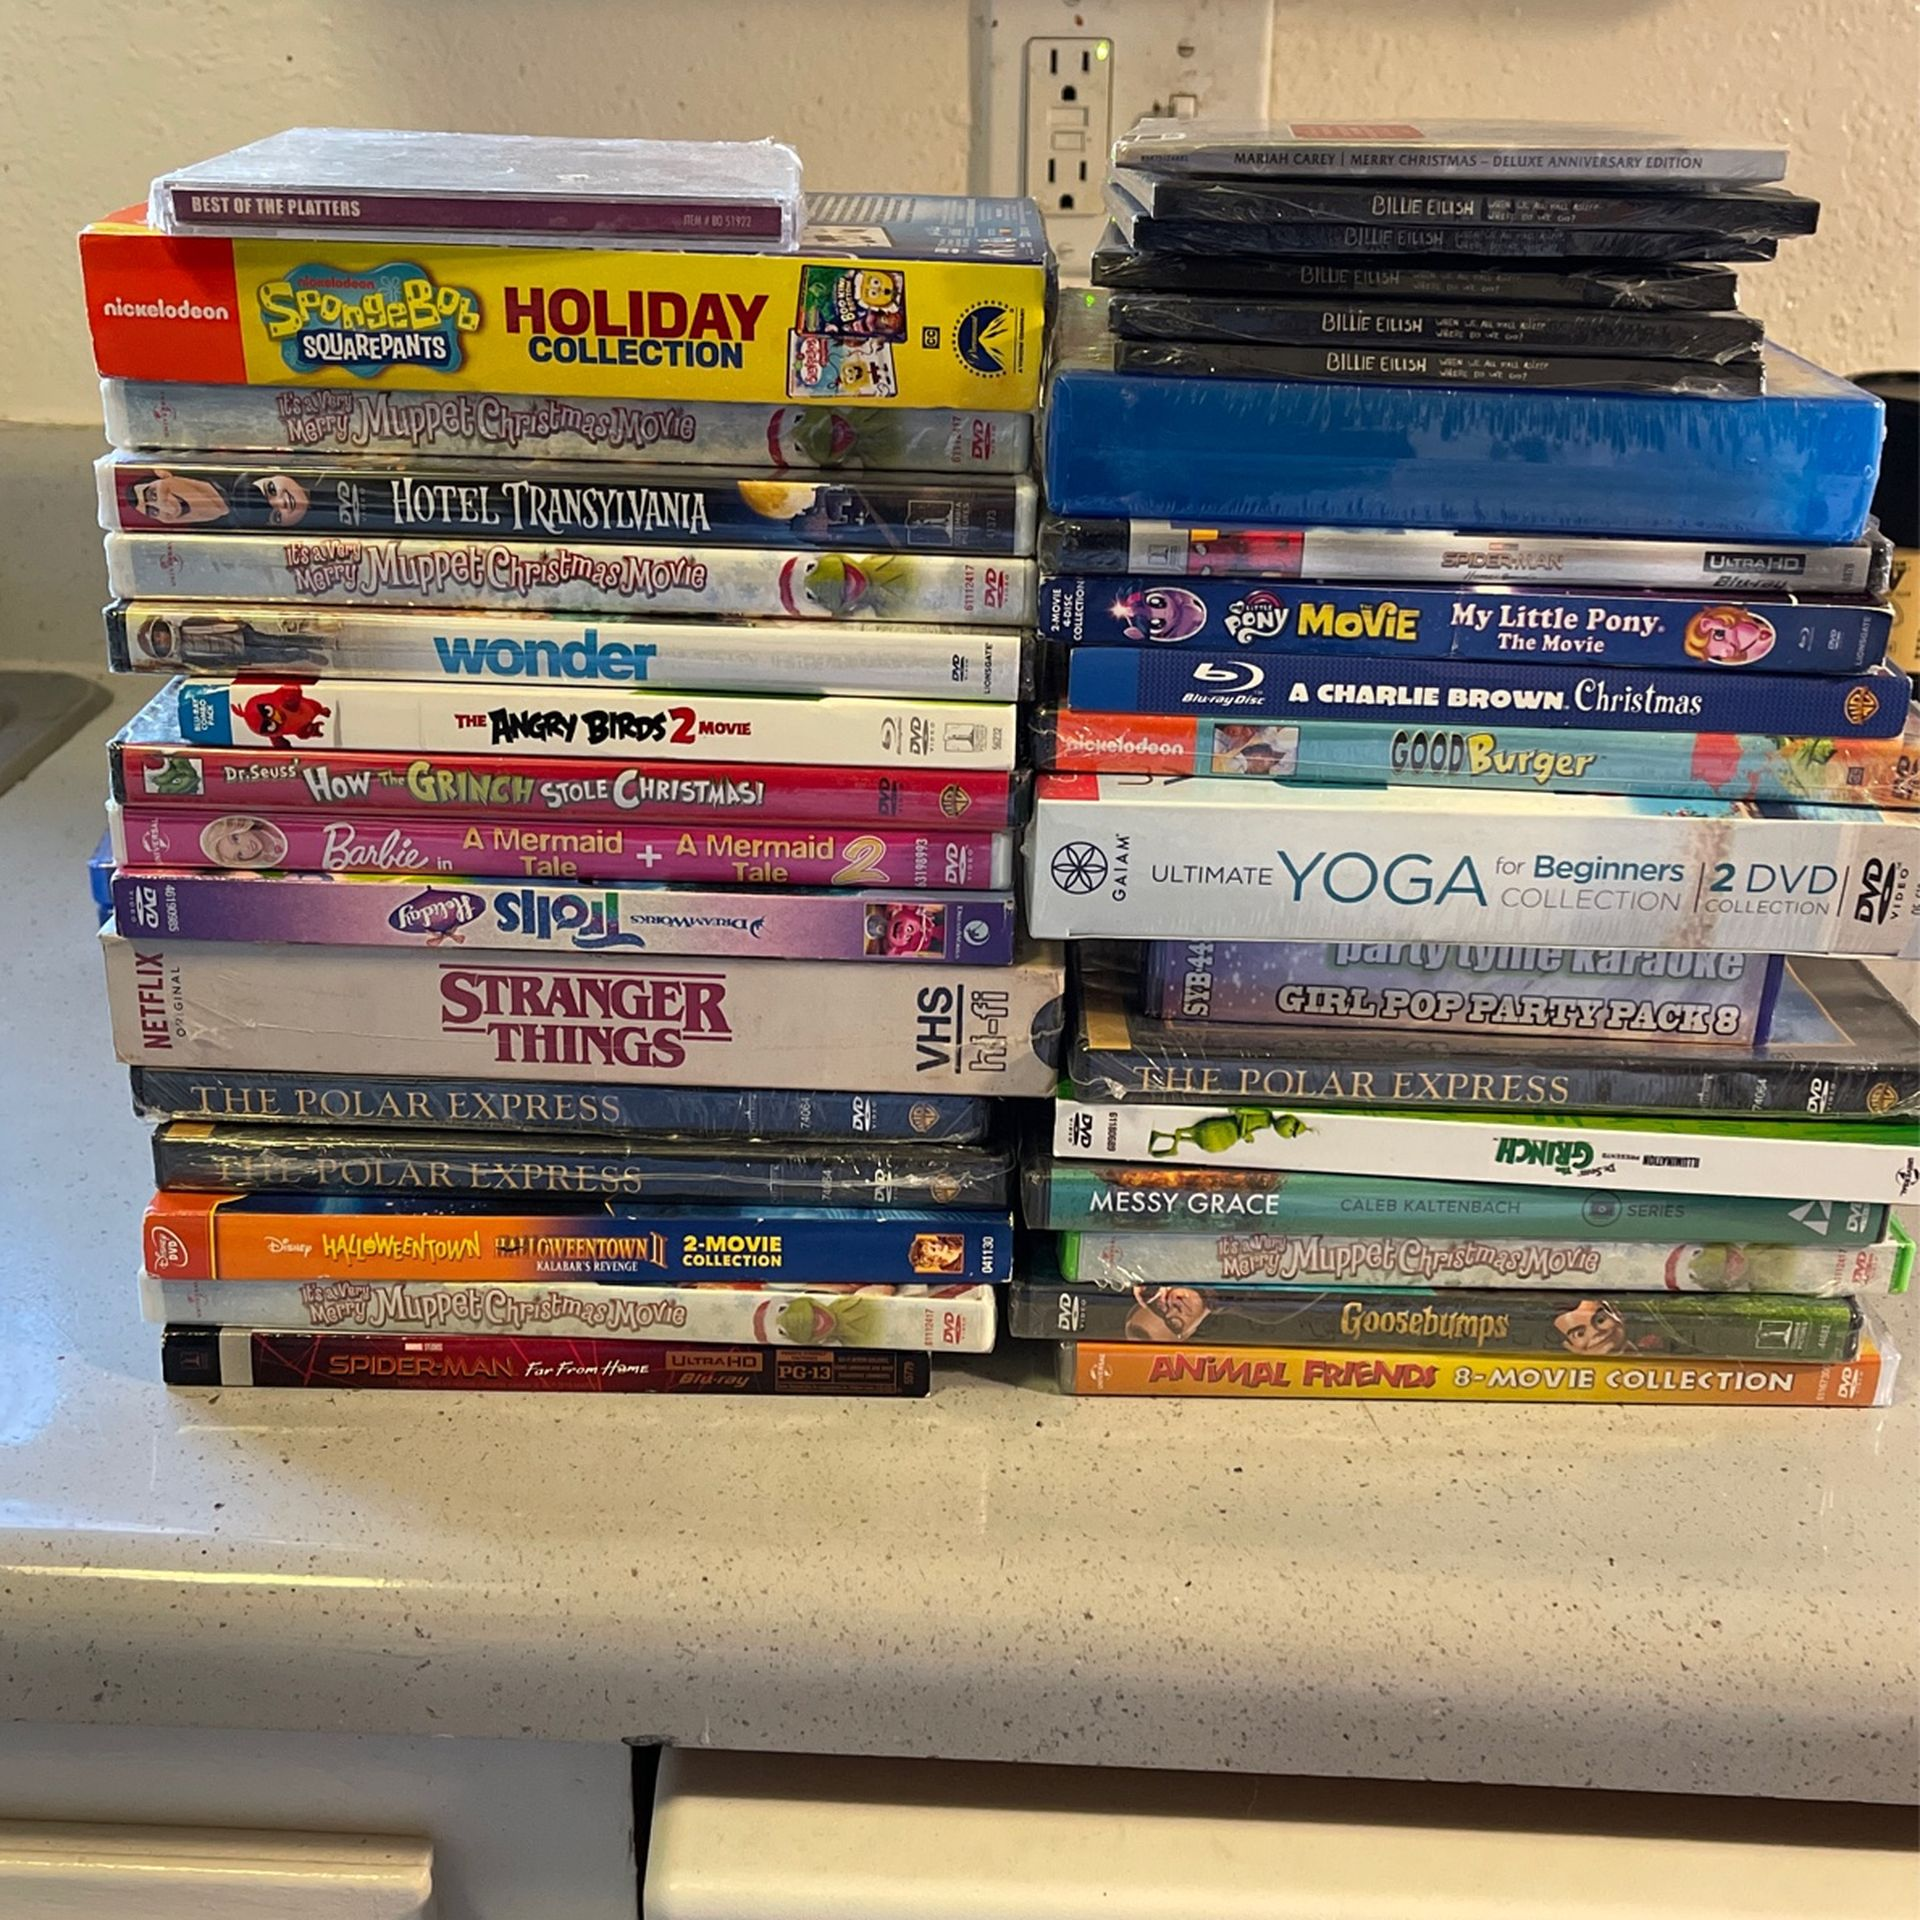 OER 25 BRAND NEW DVDS AND CDS MUST GO TODAY! HOLIDAY MOVIES POLAR EXPRESS, TROLLZ, STRANGER THINGS, GRINCH